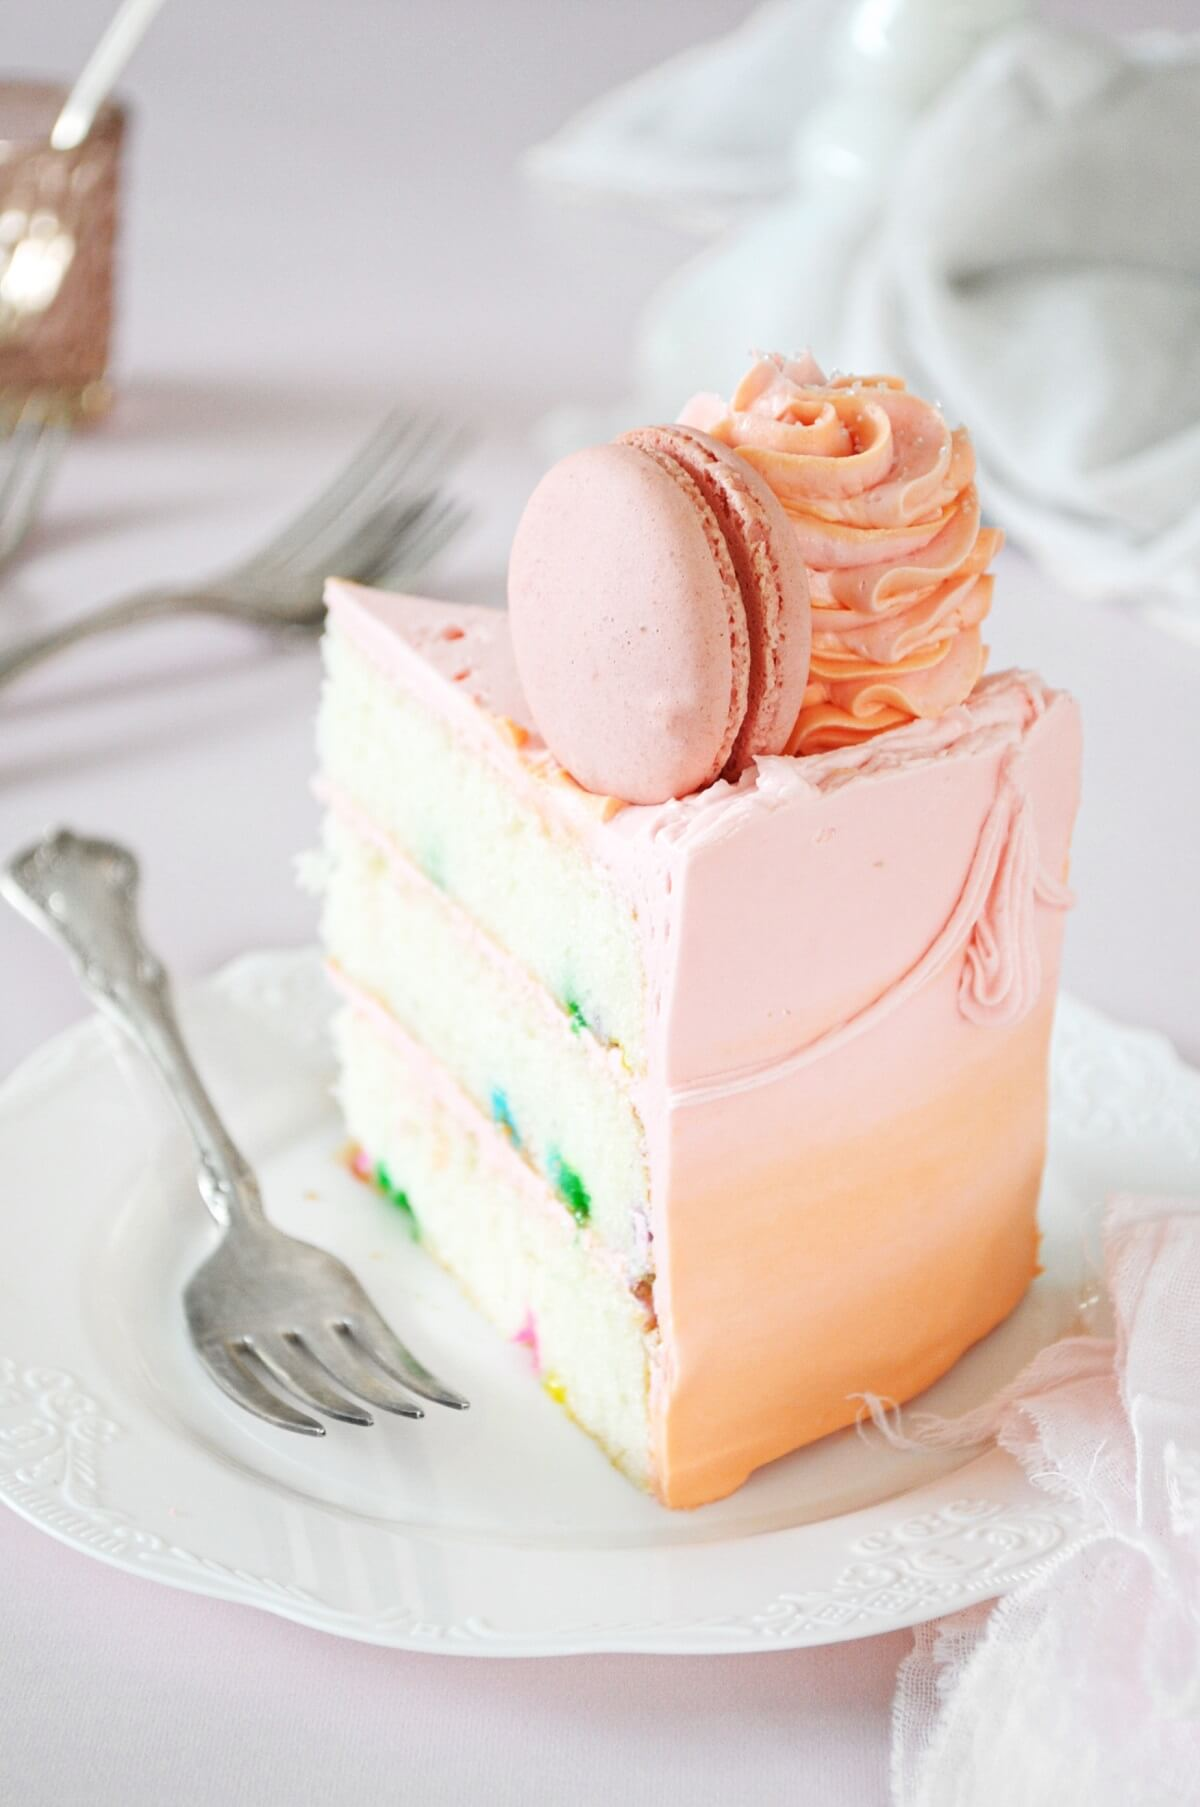 A slice of funfetti cake, frosted with pink and orange watercolor buttercream, topped with a macaron and swirl of buttercream.